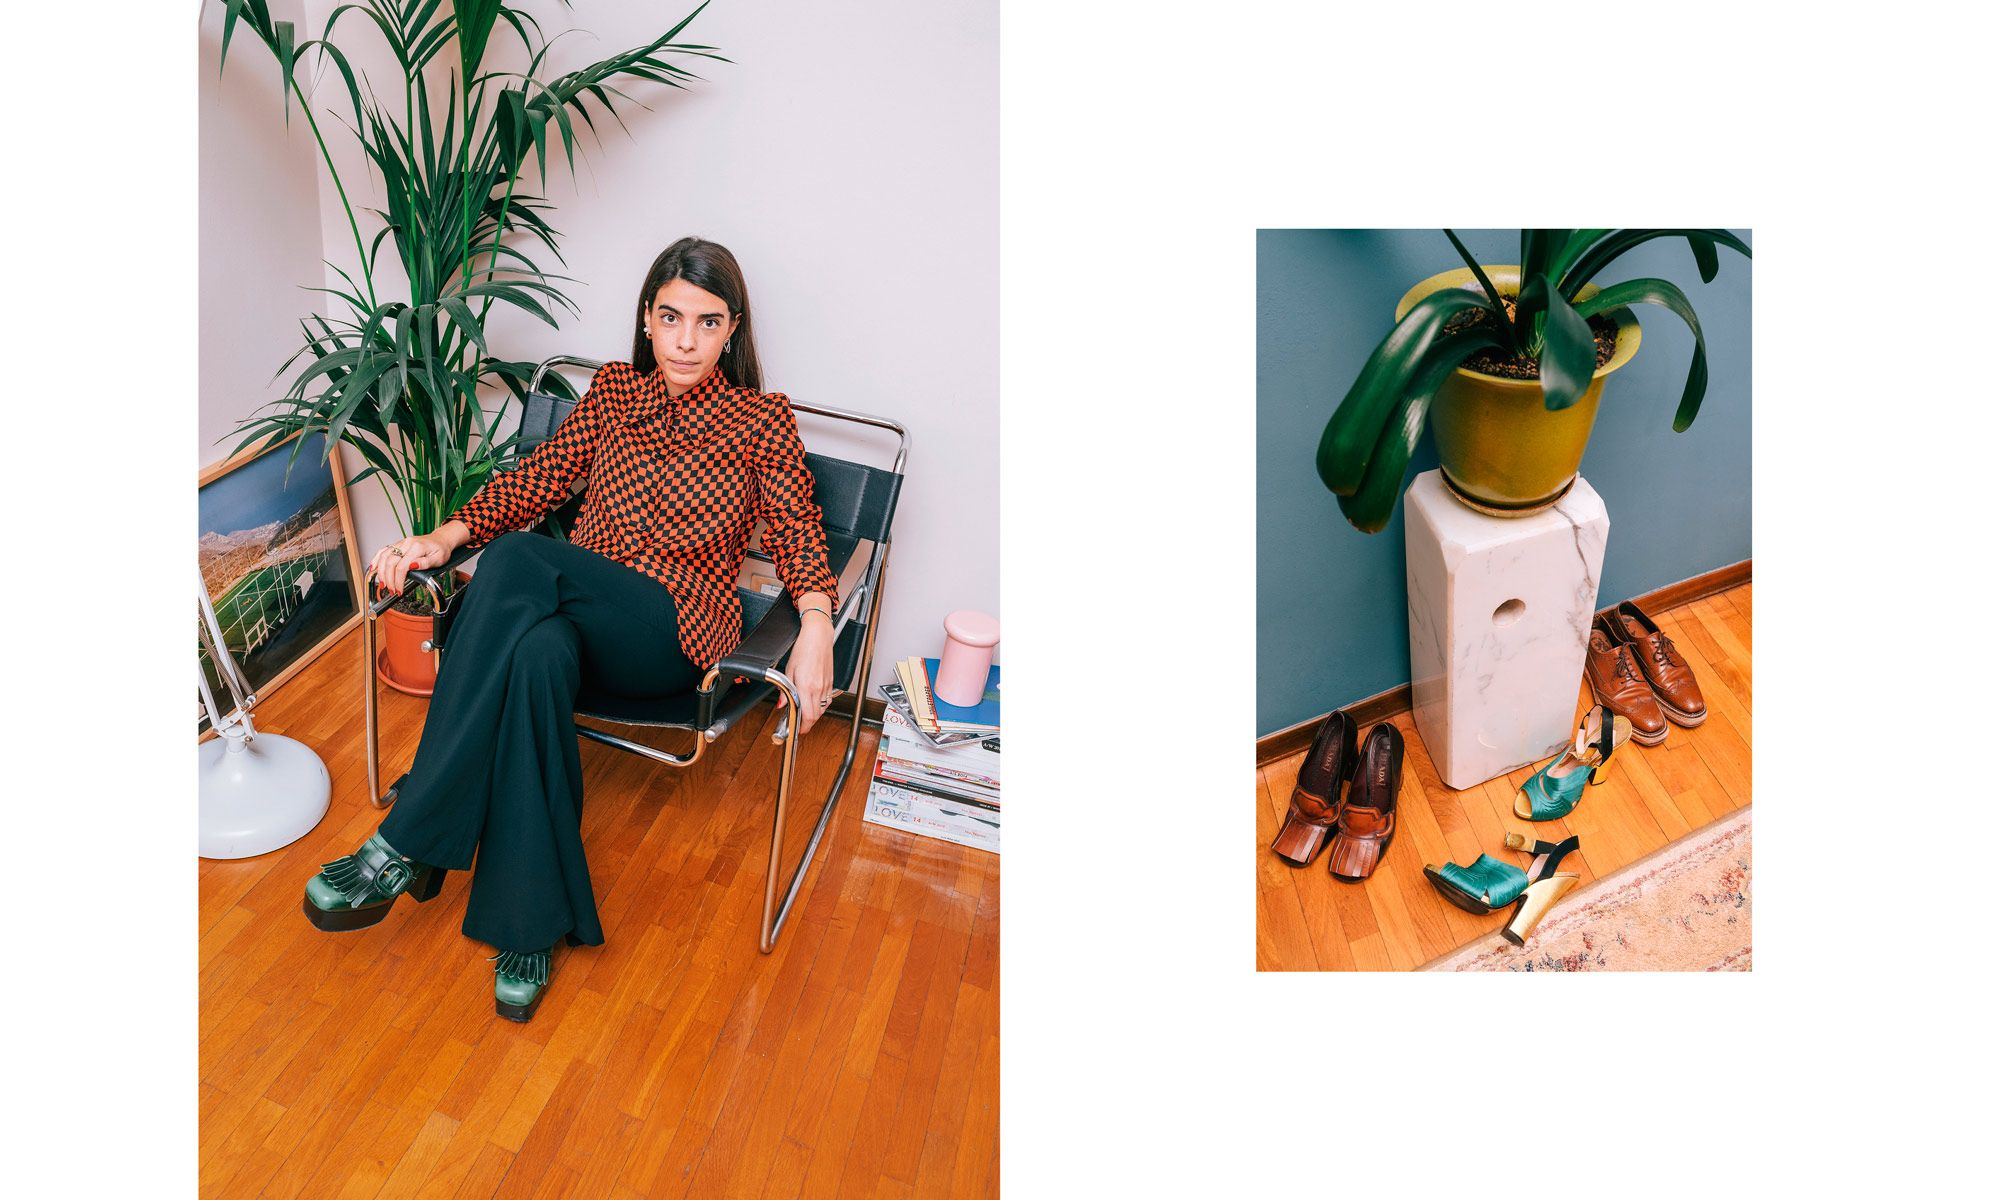 Outfit: Shirt and shoes from Miu Miu, pants from Topshop. To the right: Prada-shoes from various collections.